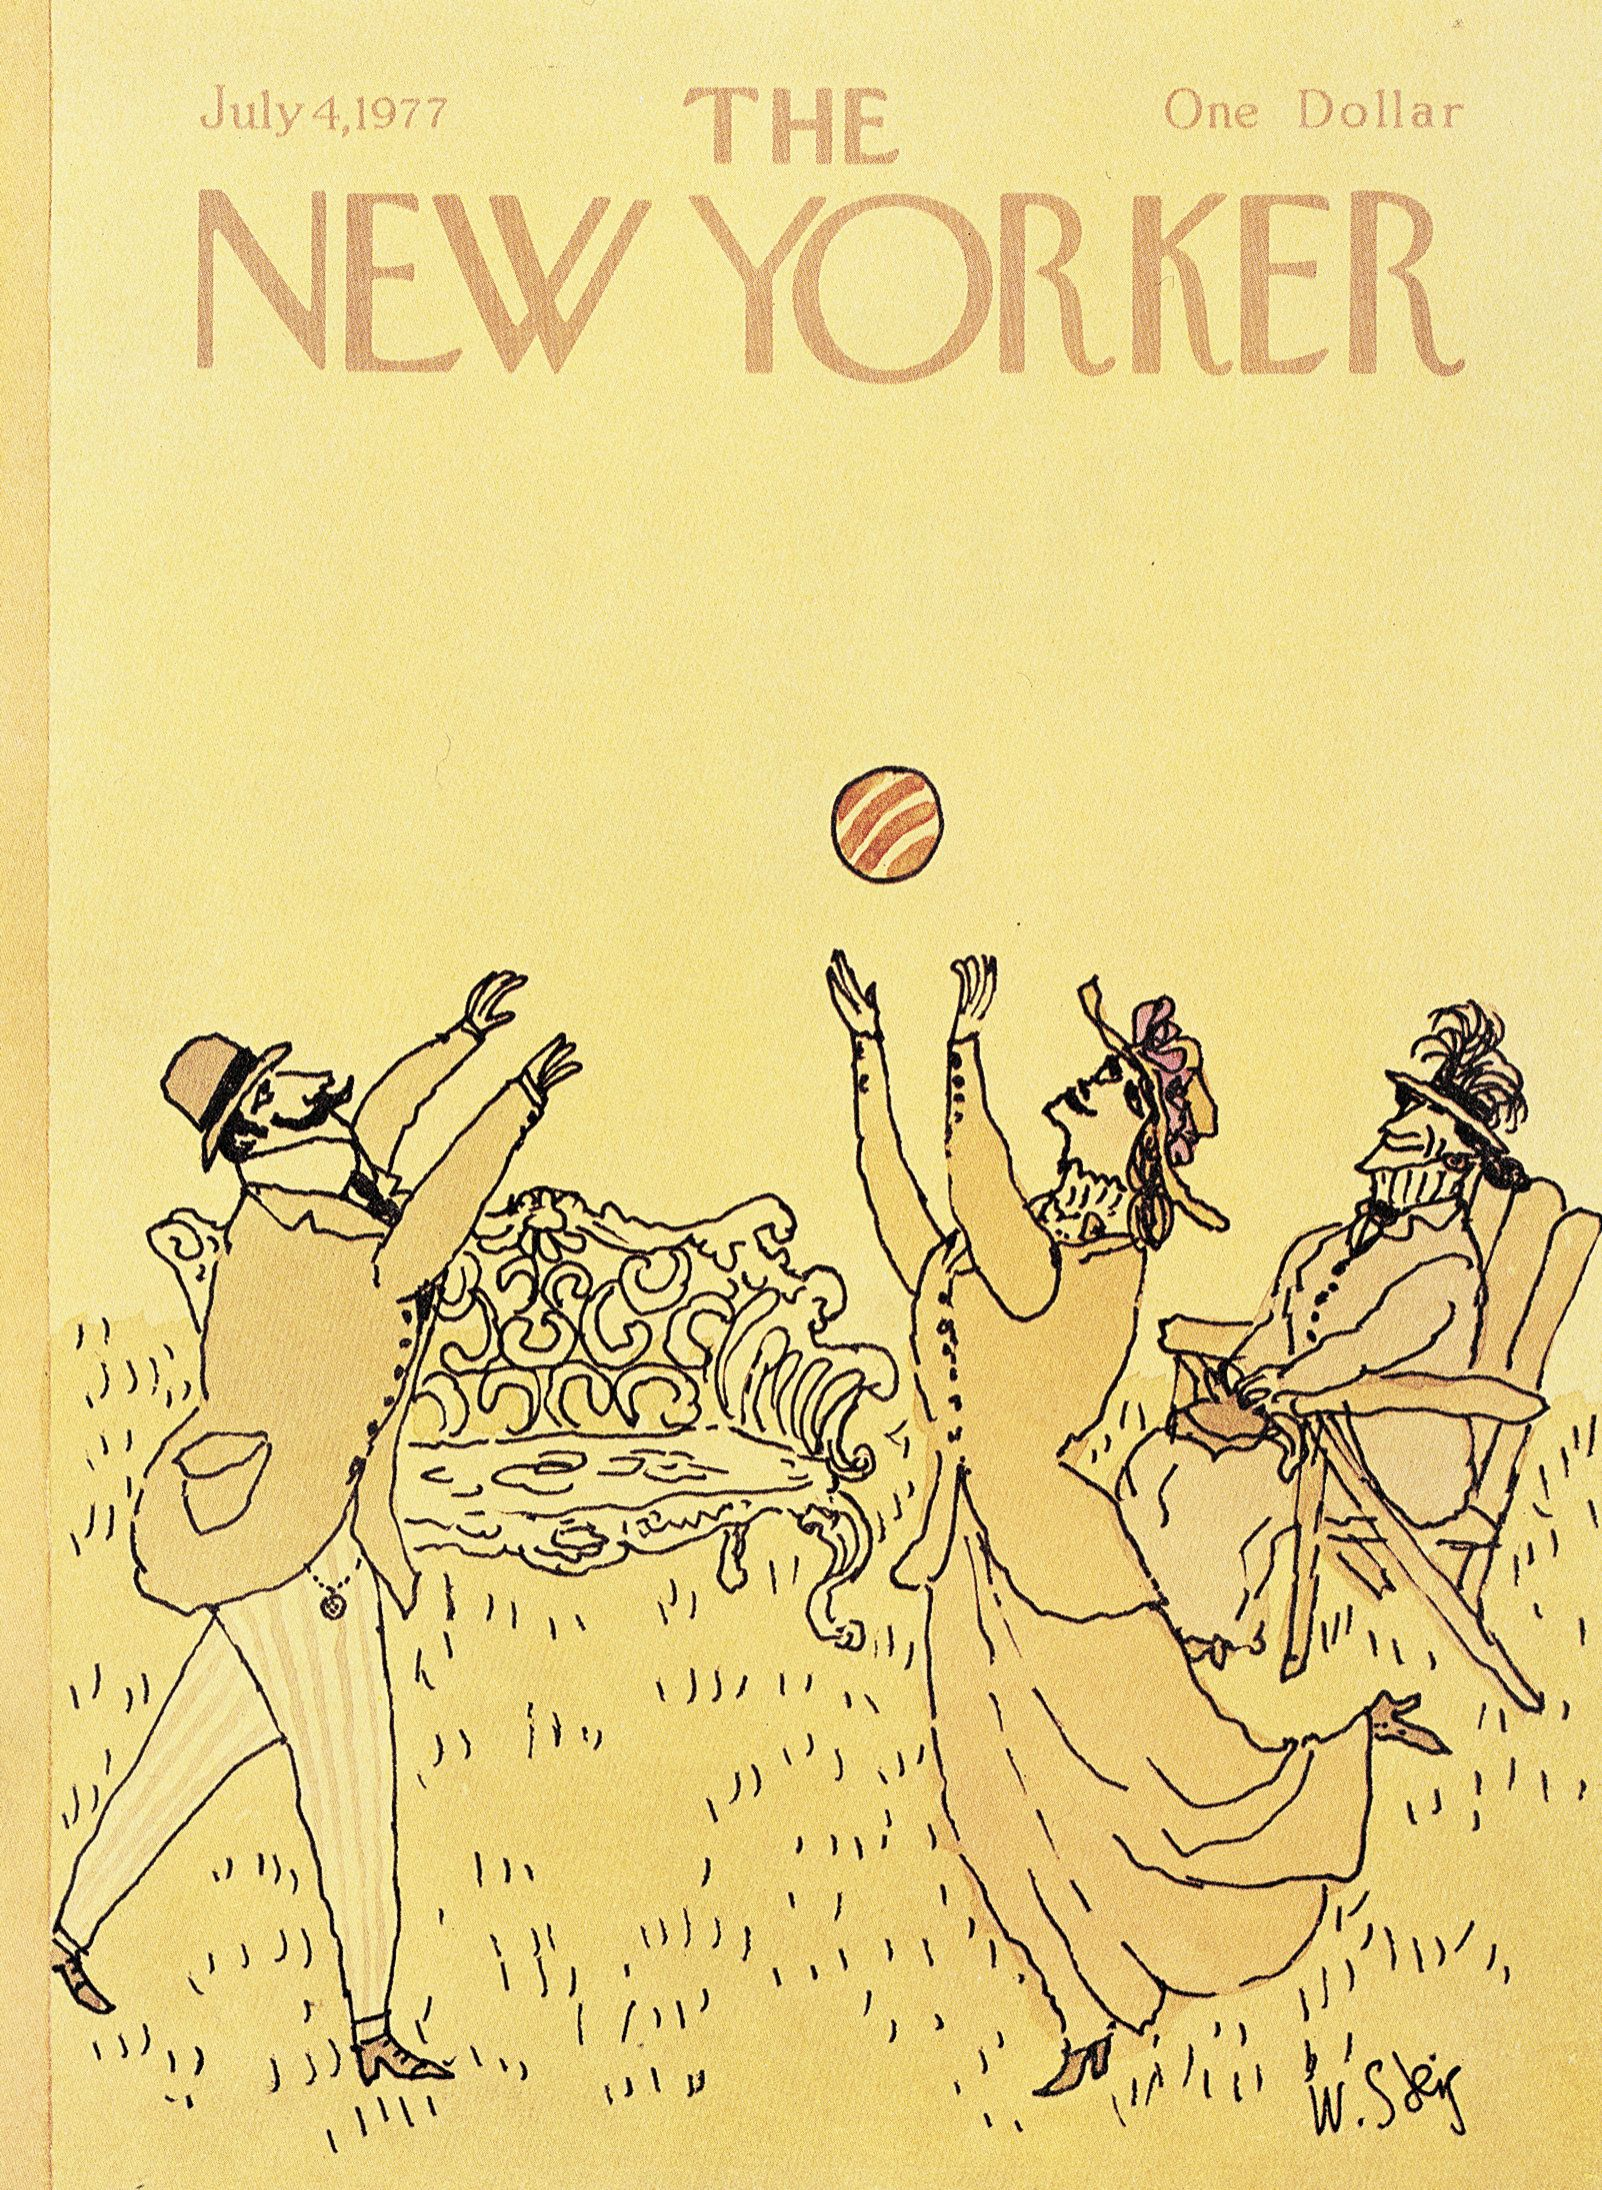 The New Yorker - Monday, July 4, 1977 - Issue # 2733 - Vol. 53 - N° 20 - Cover by : William Steig